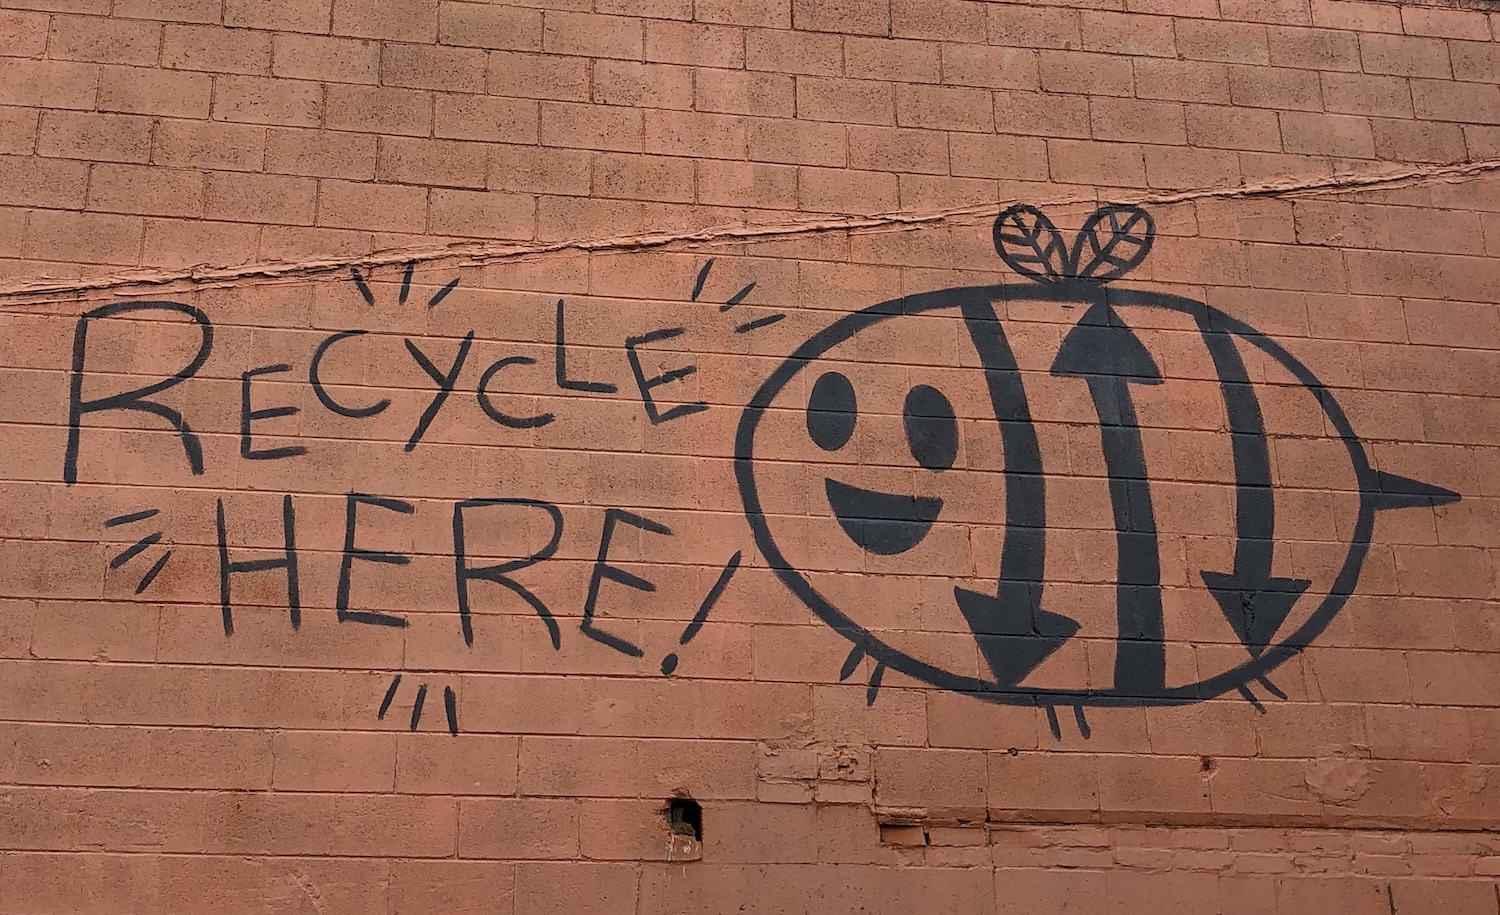 Recycle Here Logo painted on the side of a building